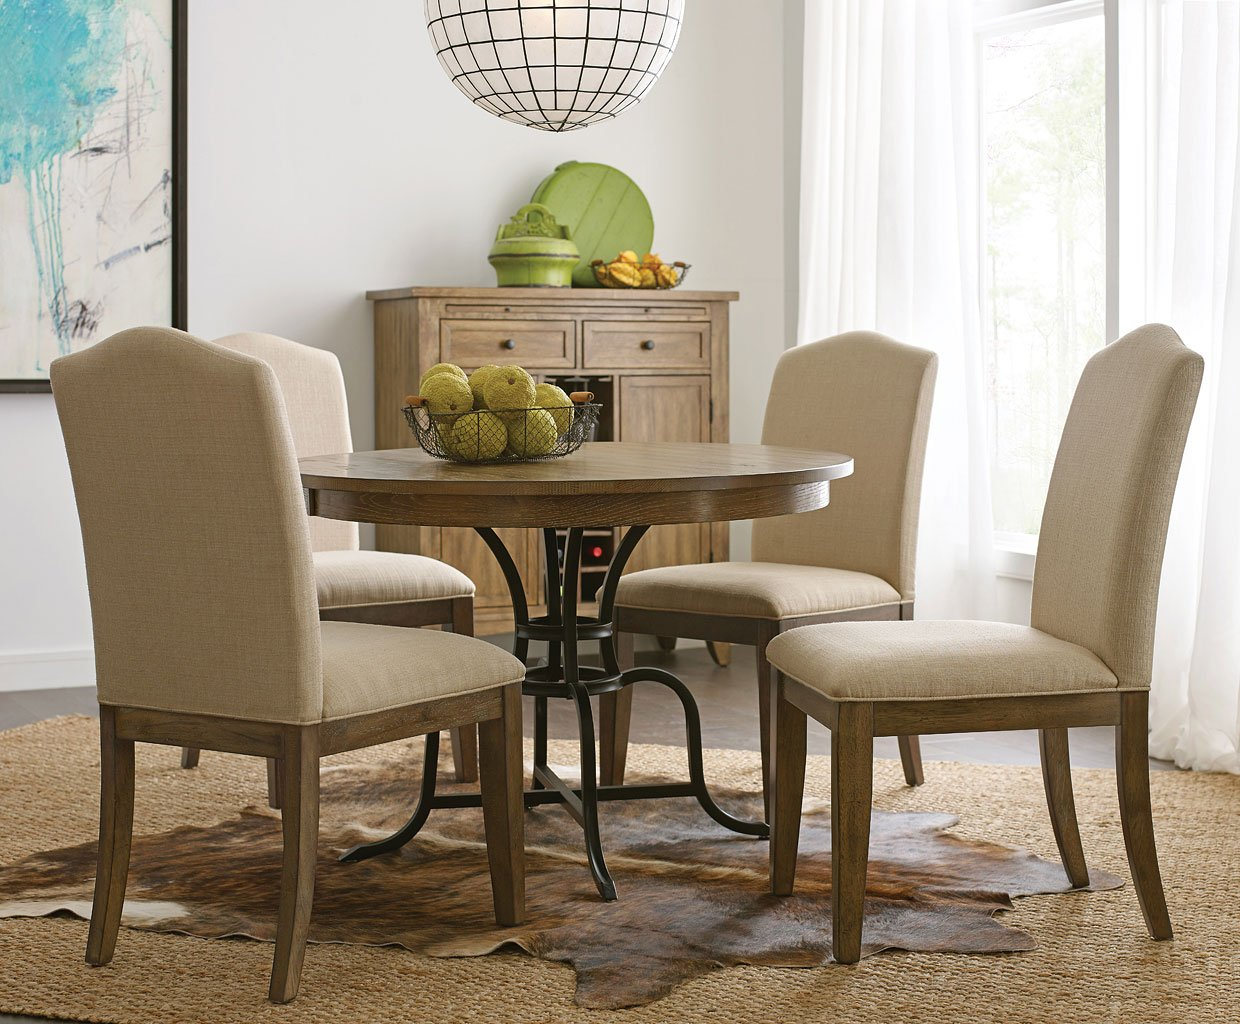 The Nook Inch Round Metal Dining Room Set Oak Kincaid Furniture - 54 inch round dining room table